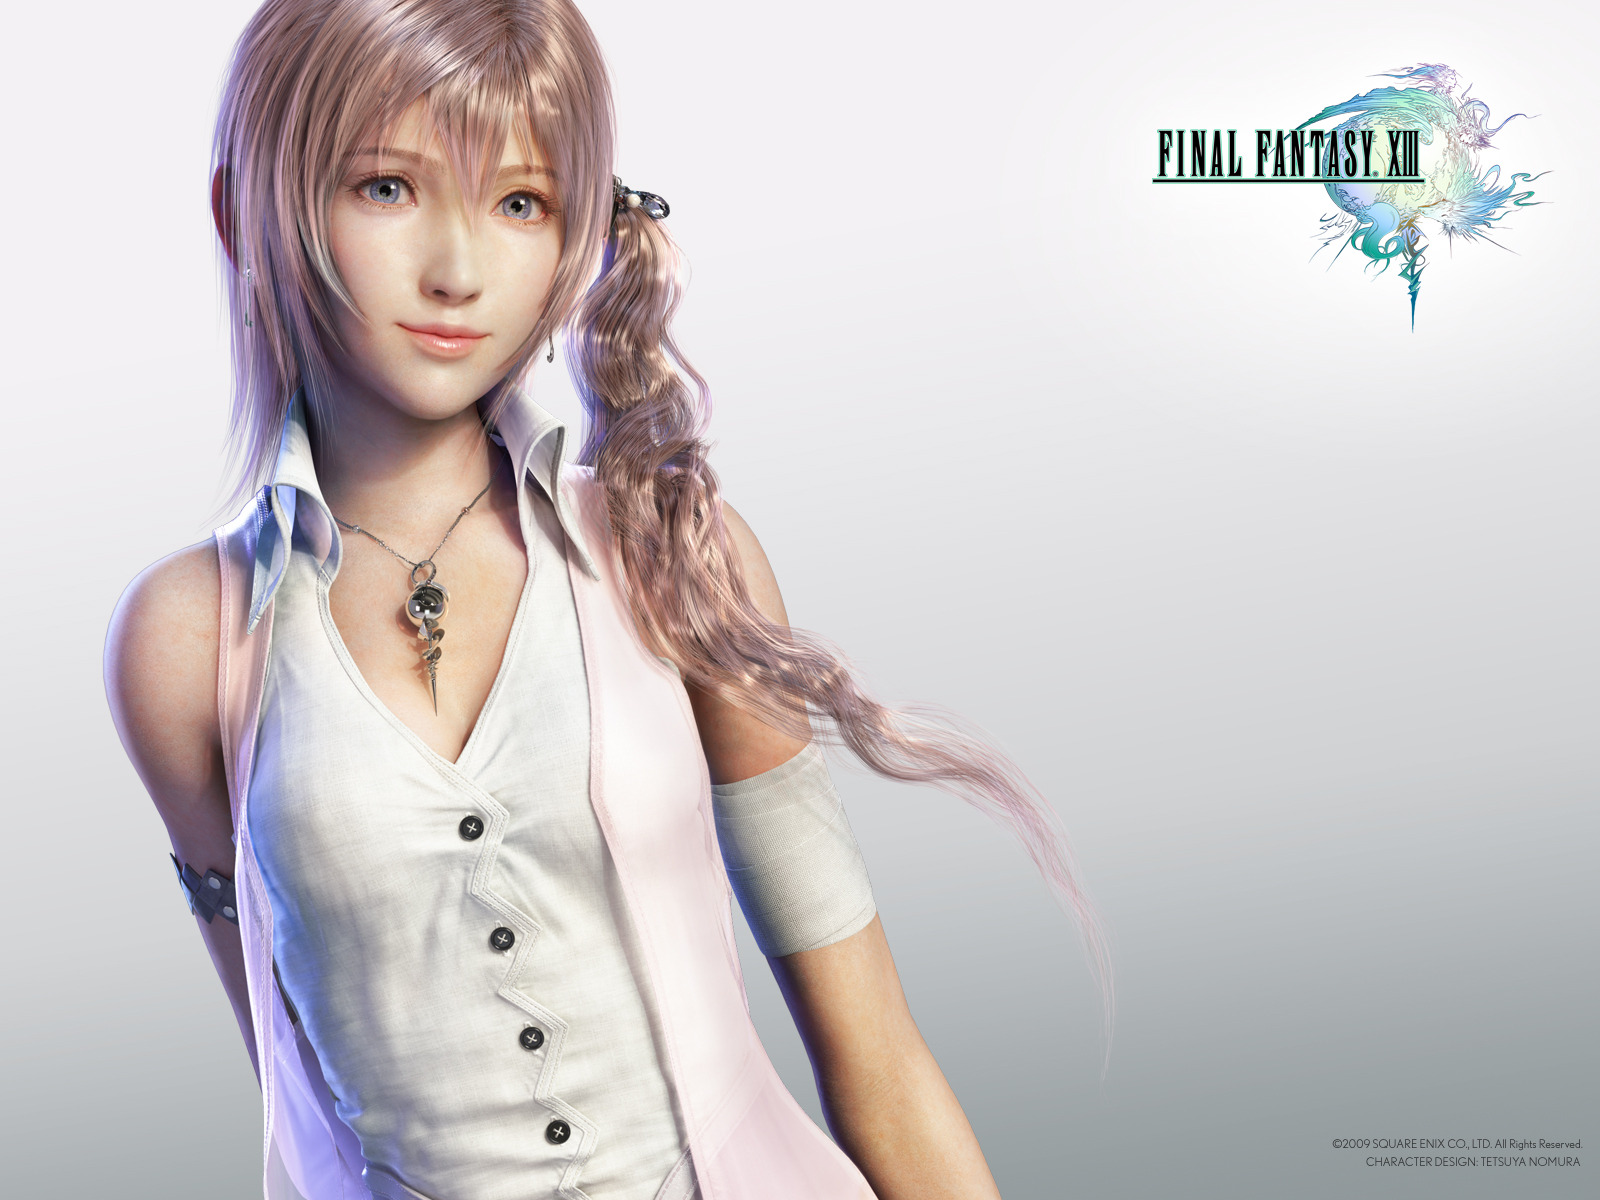 ff13 des photos de - photo #3